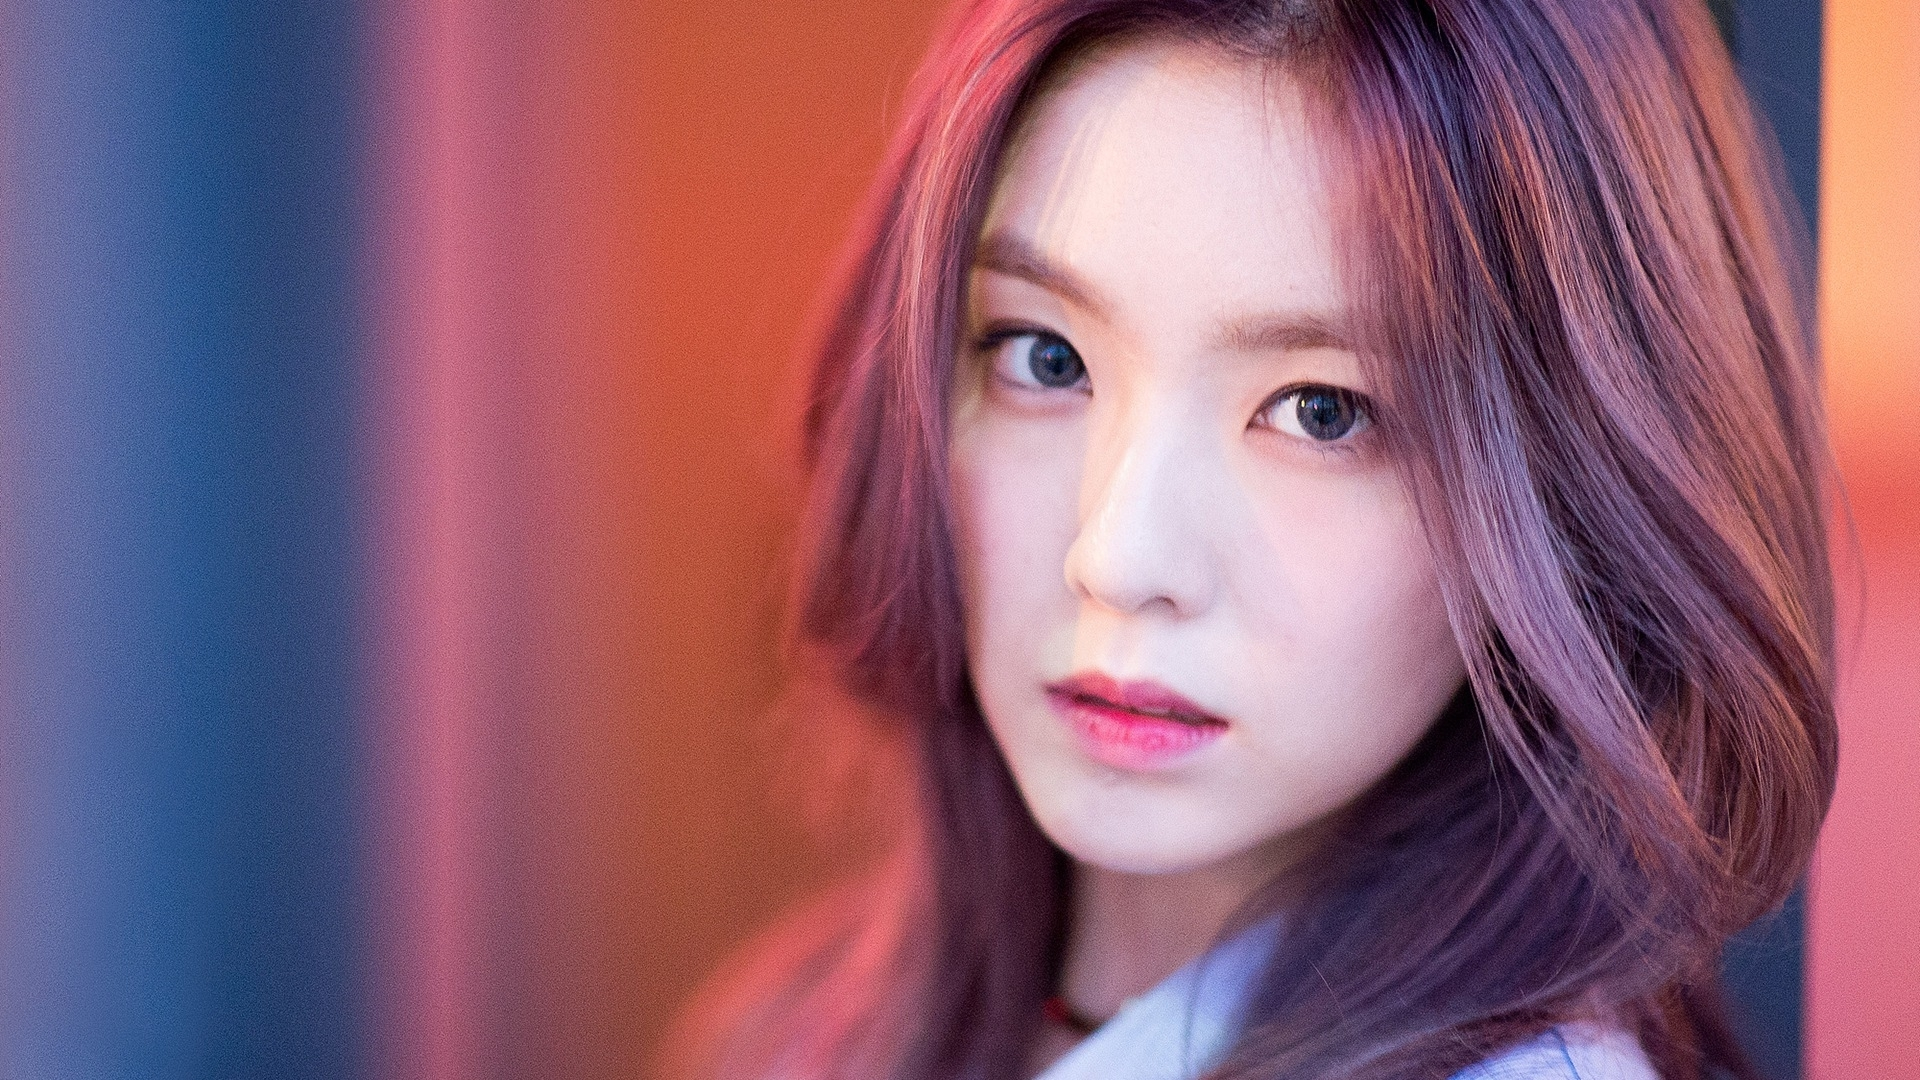 irene red velvet purple hair beautif wallpaper #15273